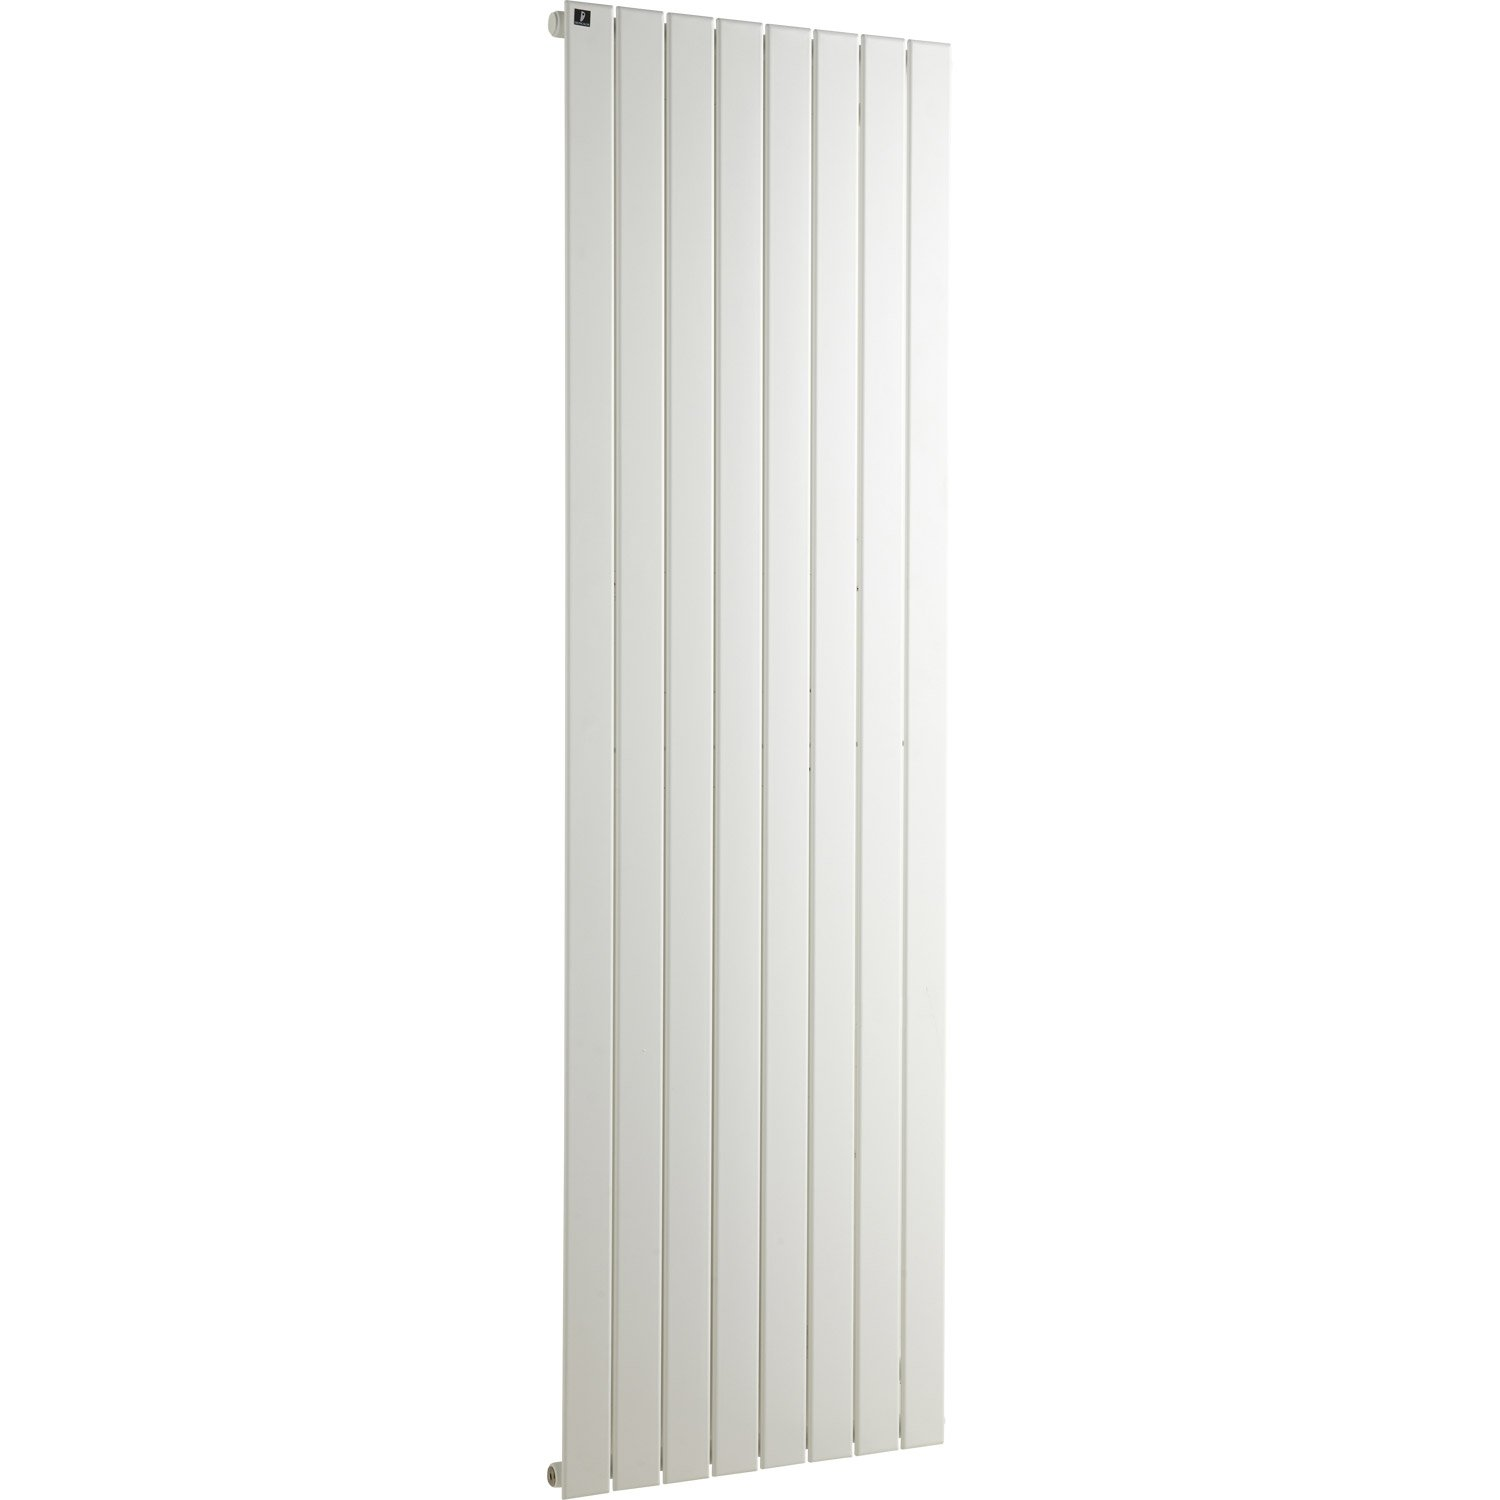 radiateur chauffage central pianosa blanc cm 1265. Black Bedroom Furniture Sets. Home Design Ideas